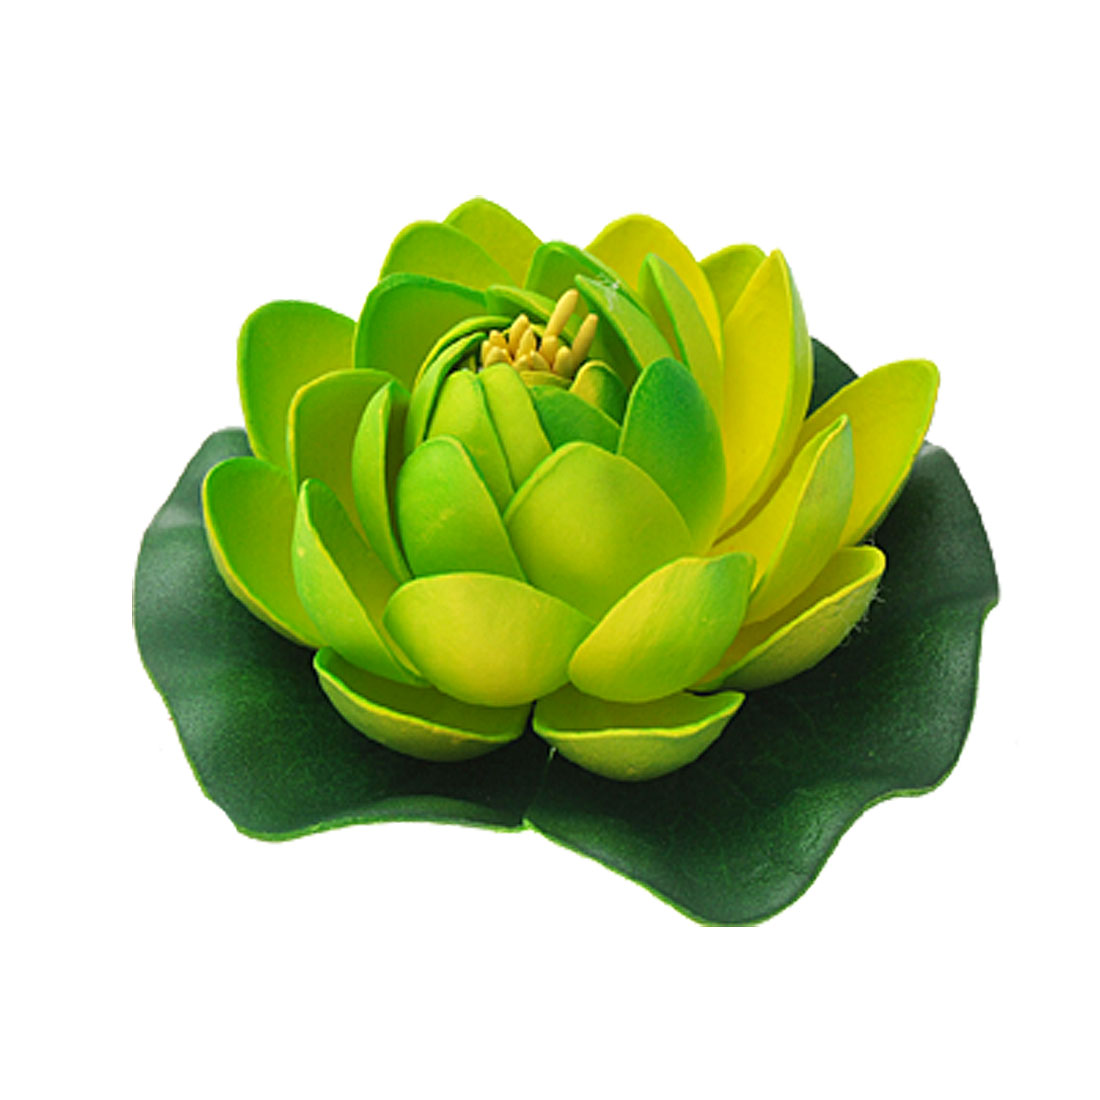 Fish Aquarium Tank Foam Lotus Plant Flower Decoration